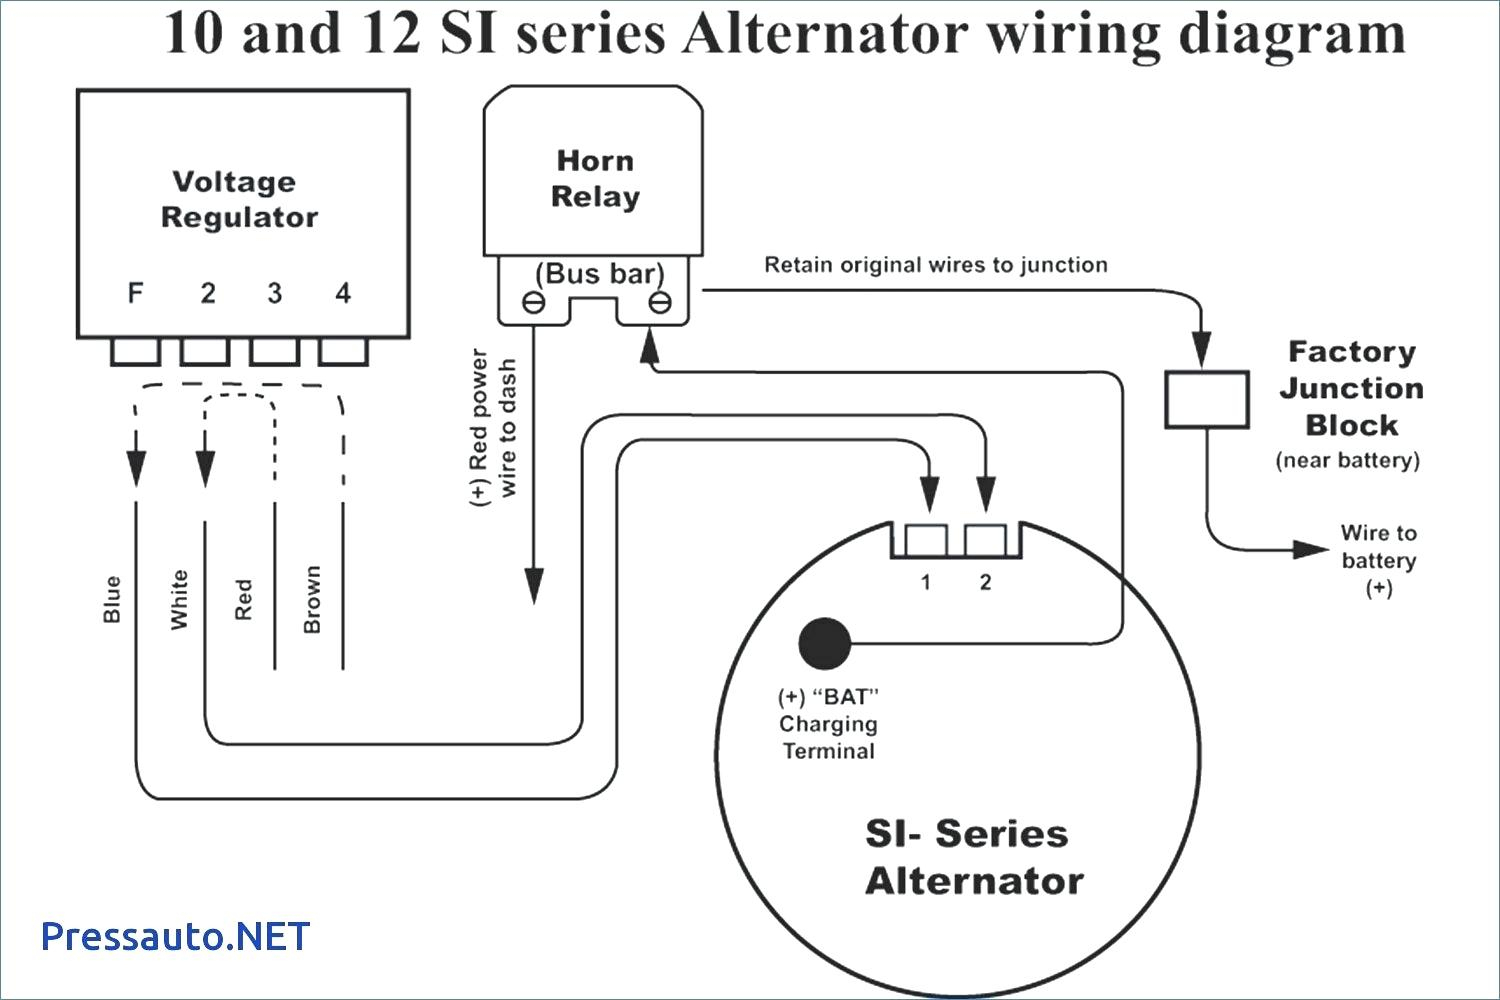 Gm Alt Wire Diagram | Wiring Diagram - Gm 4 Wire Alternator Wiring Diagram